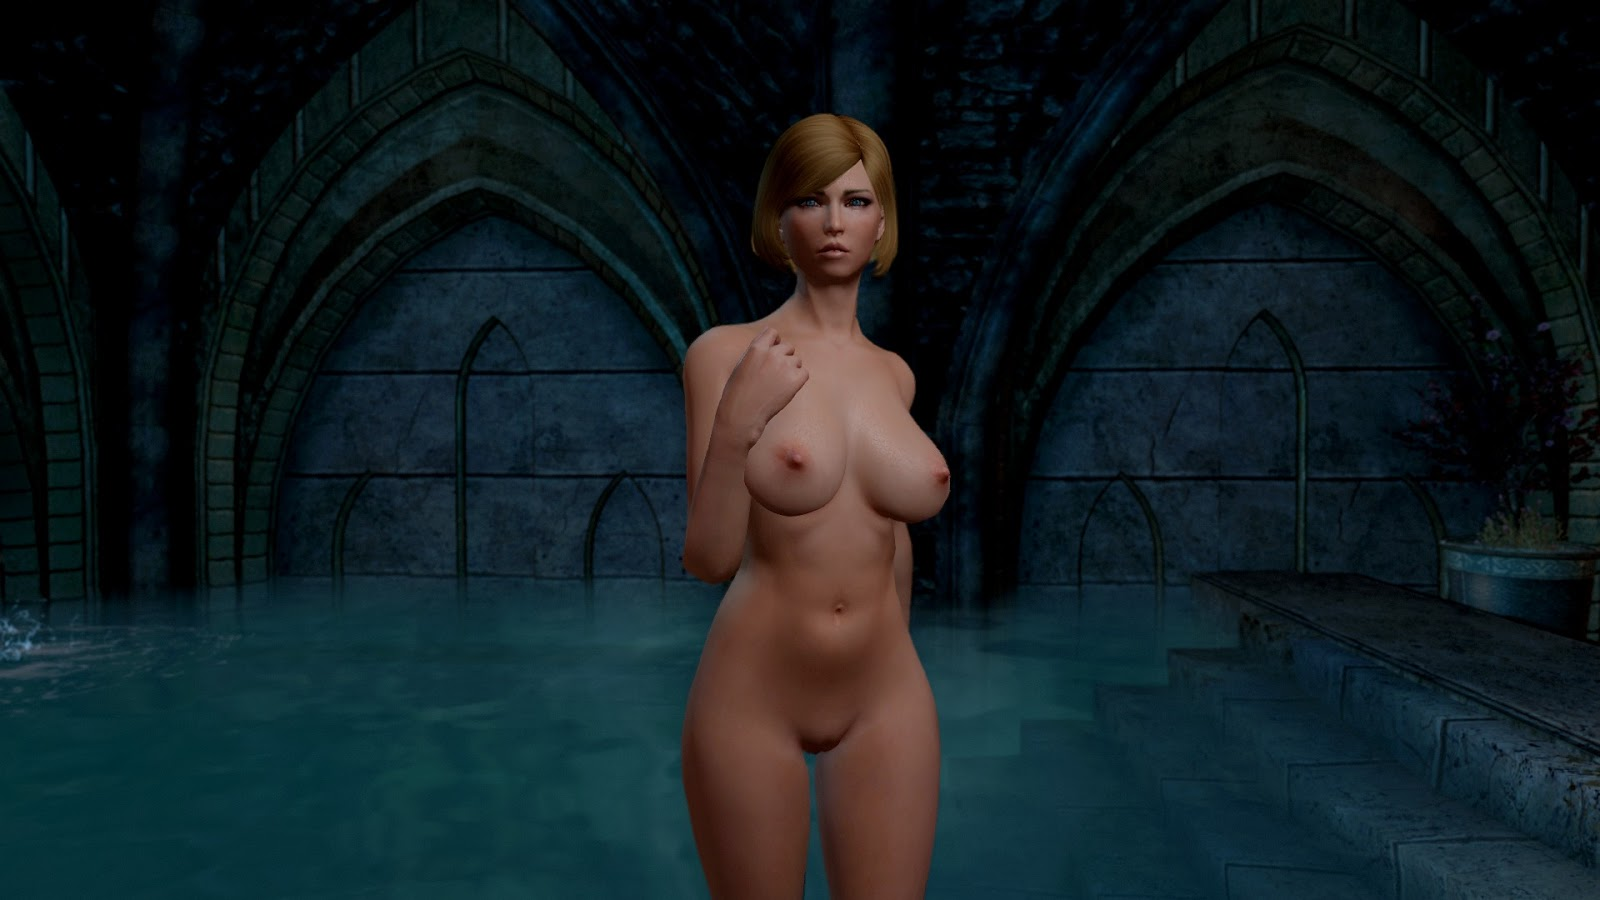 Skyrim nude models nudes photos